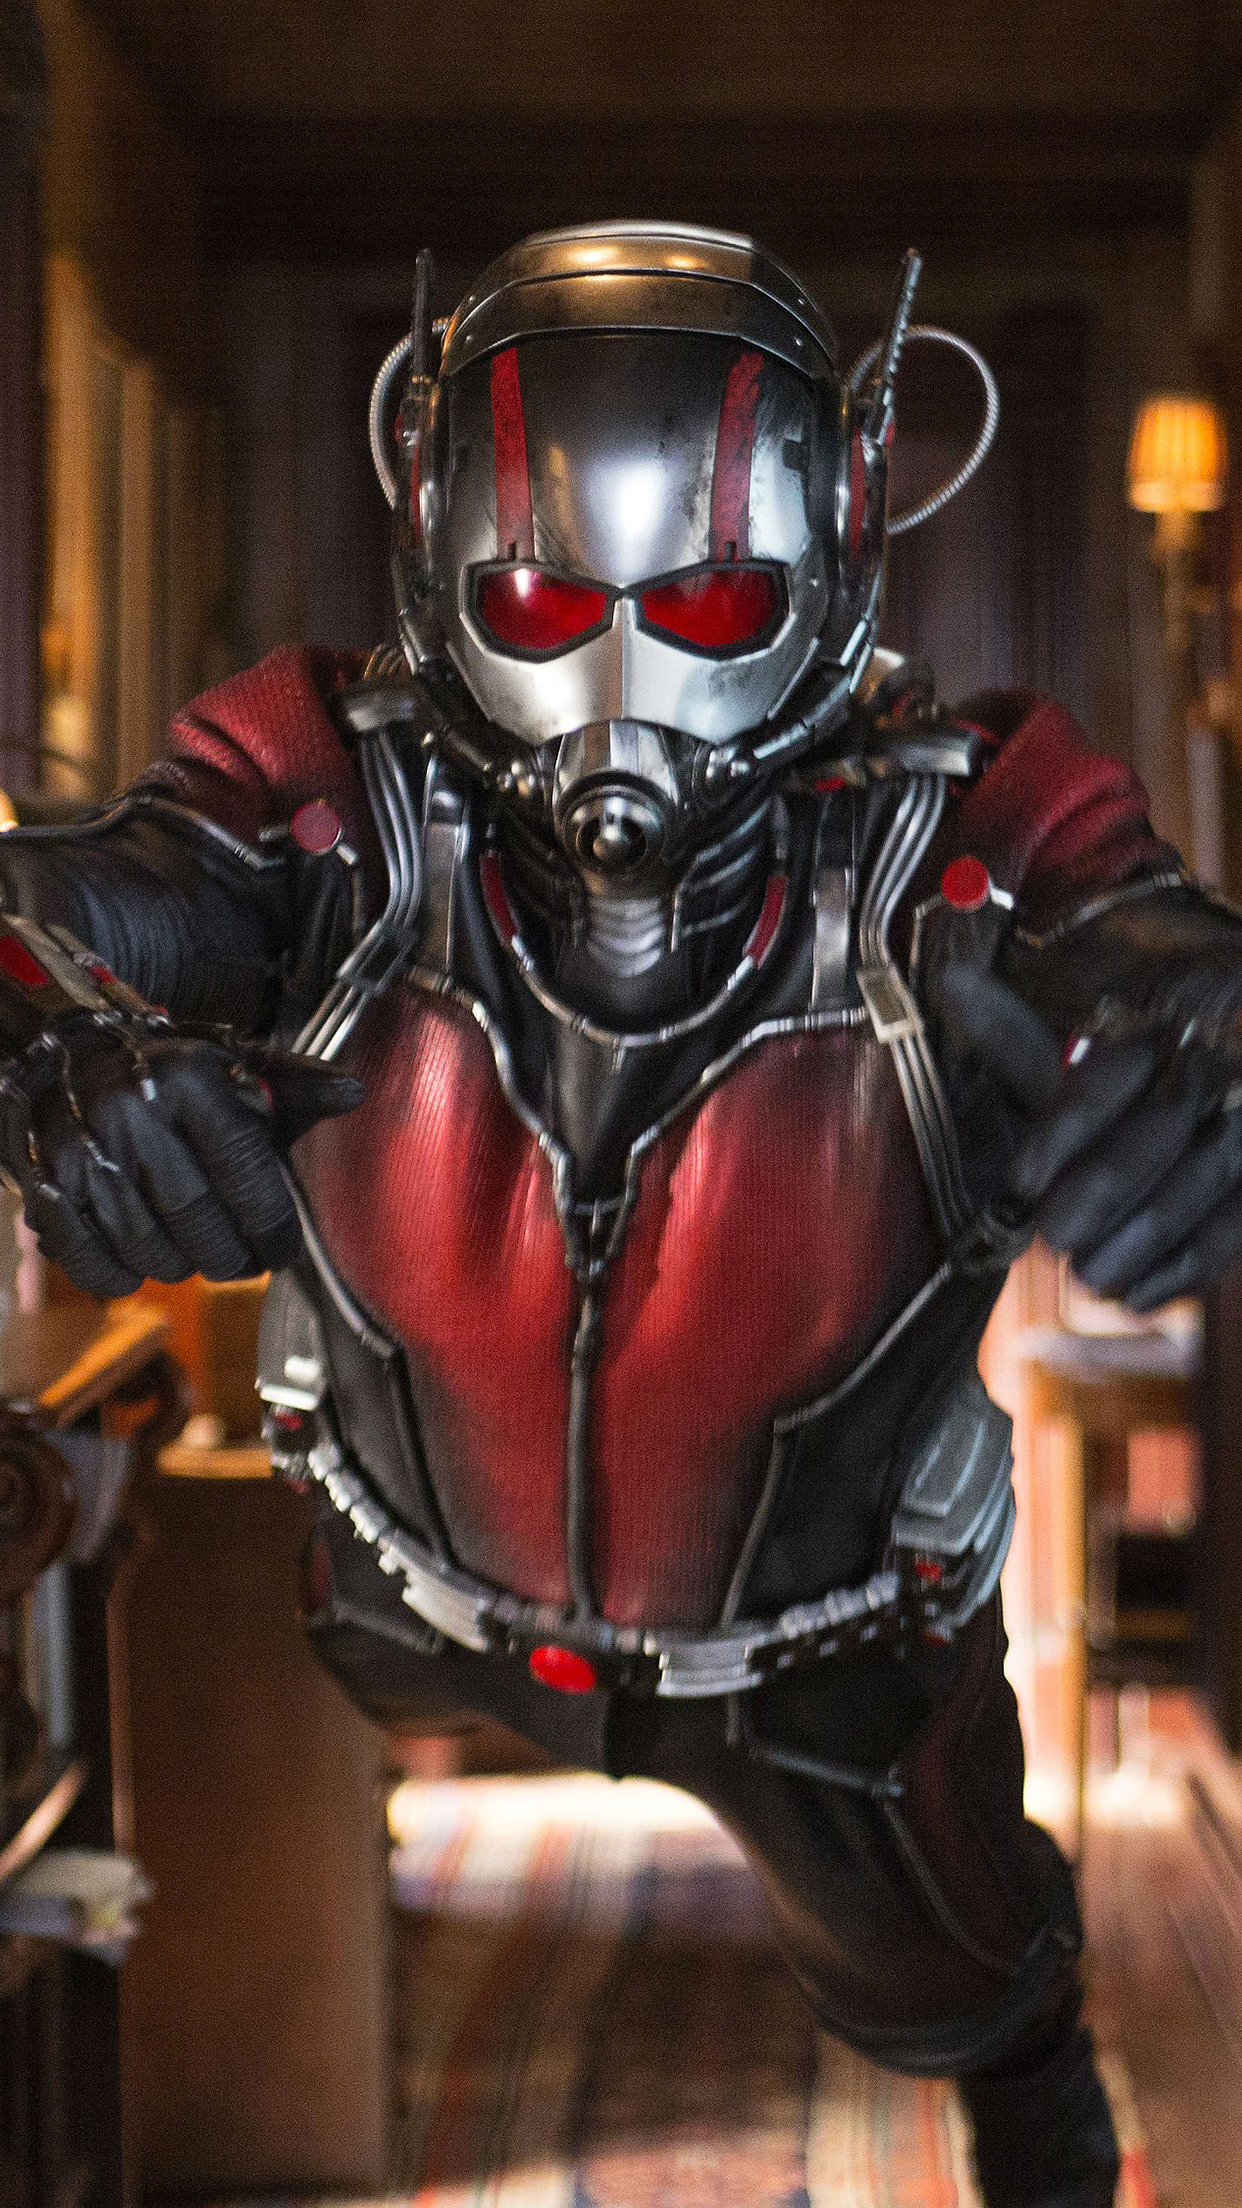 Ant Man Action iPhone 3Wallpapers Parallax Les 3 Wallpapers iPhone du jour (18/07/2015)